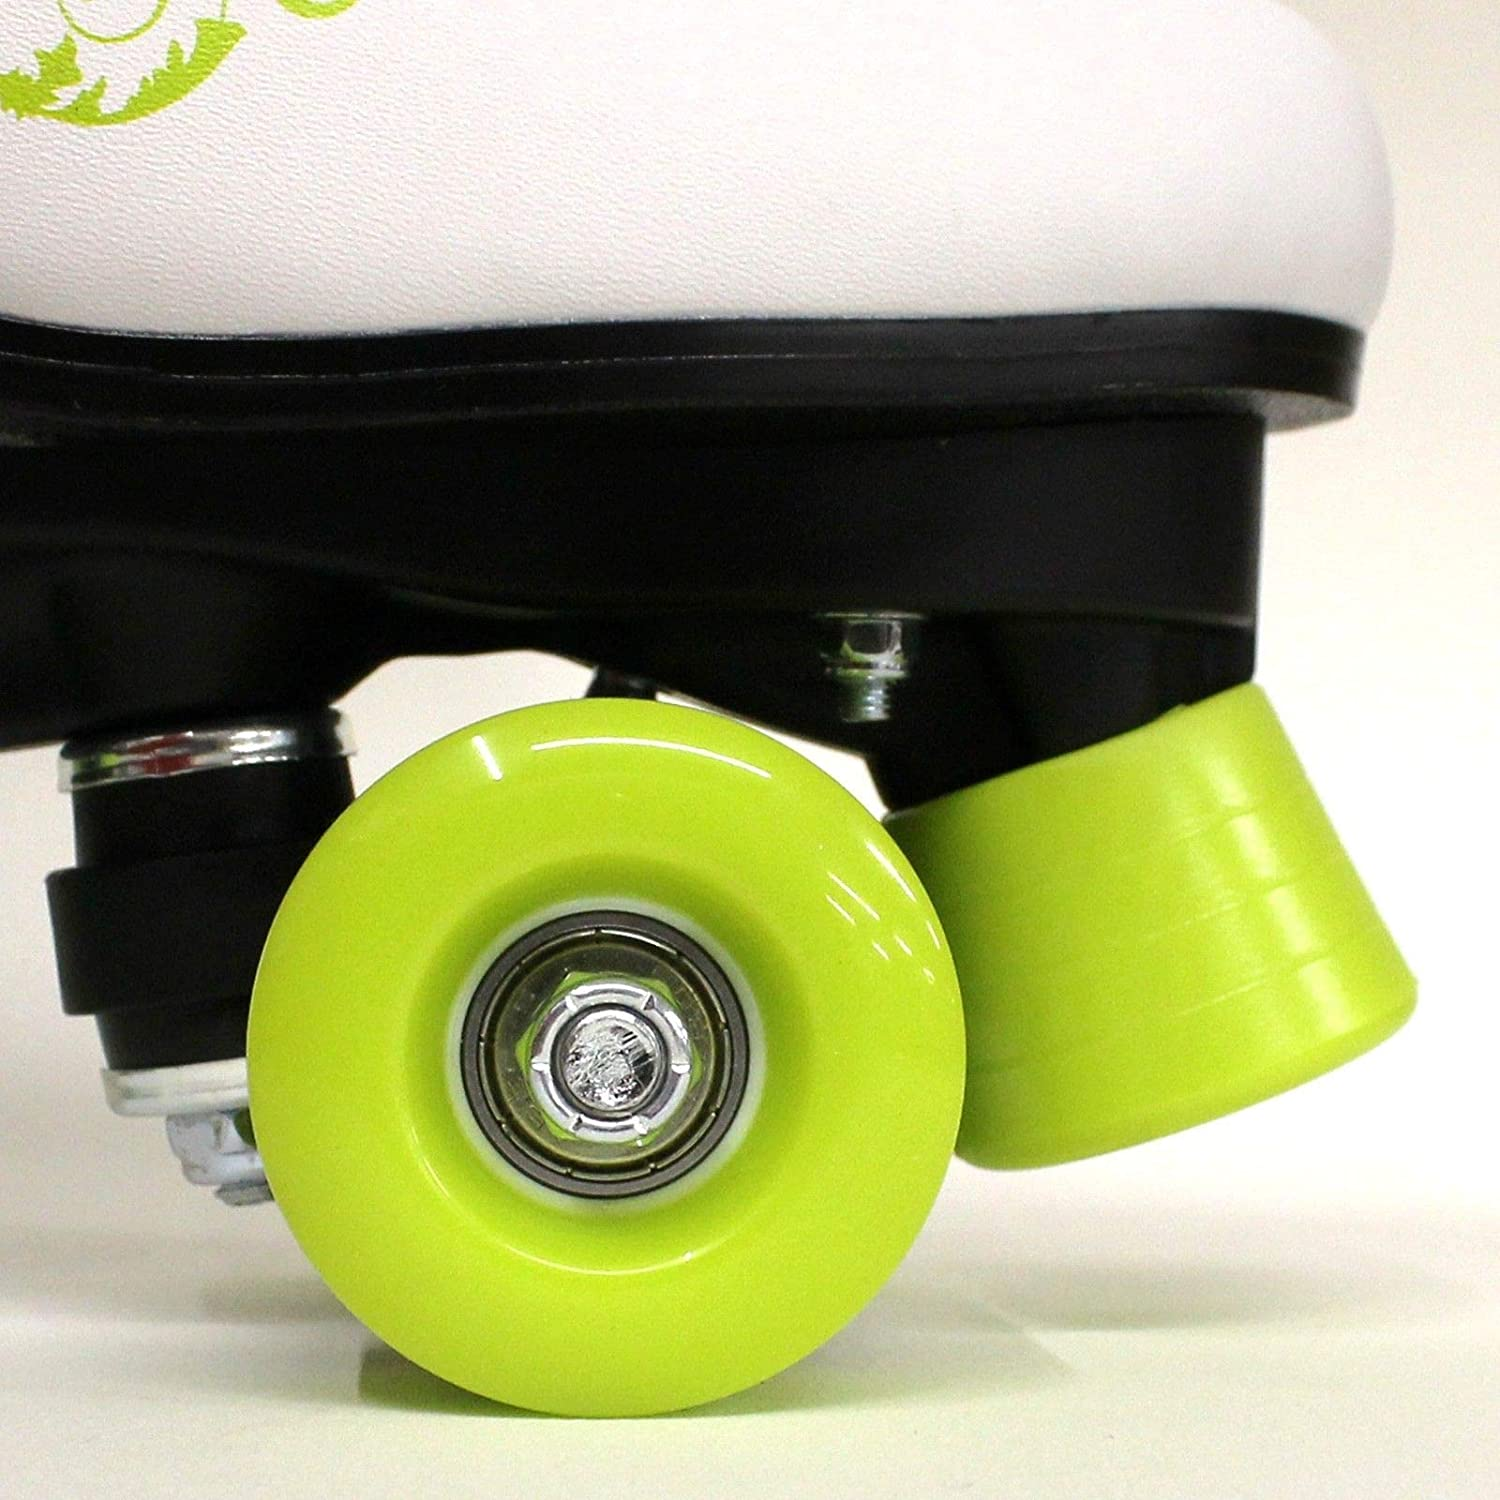 Kingdom GB Vector V2 Quad Wheels Roller Skates - 4